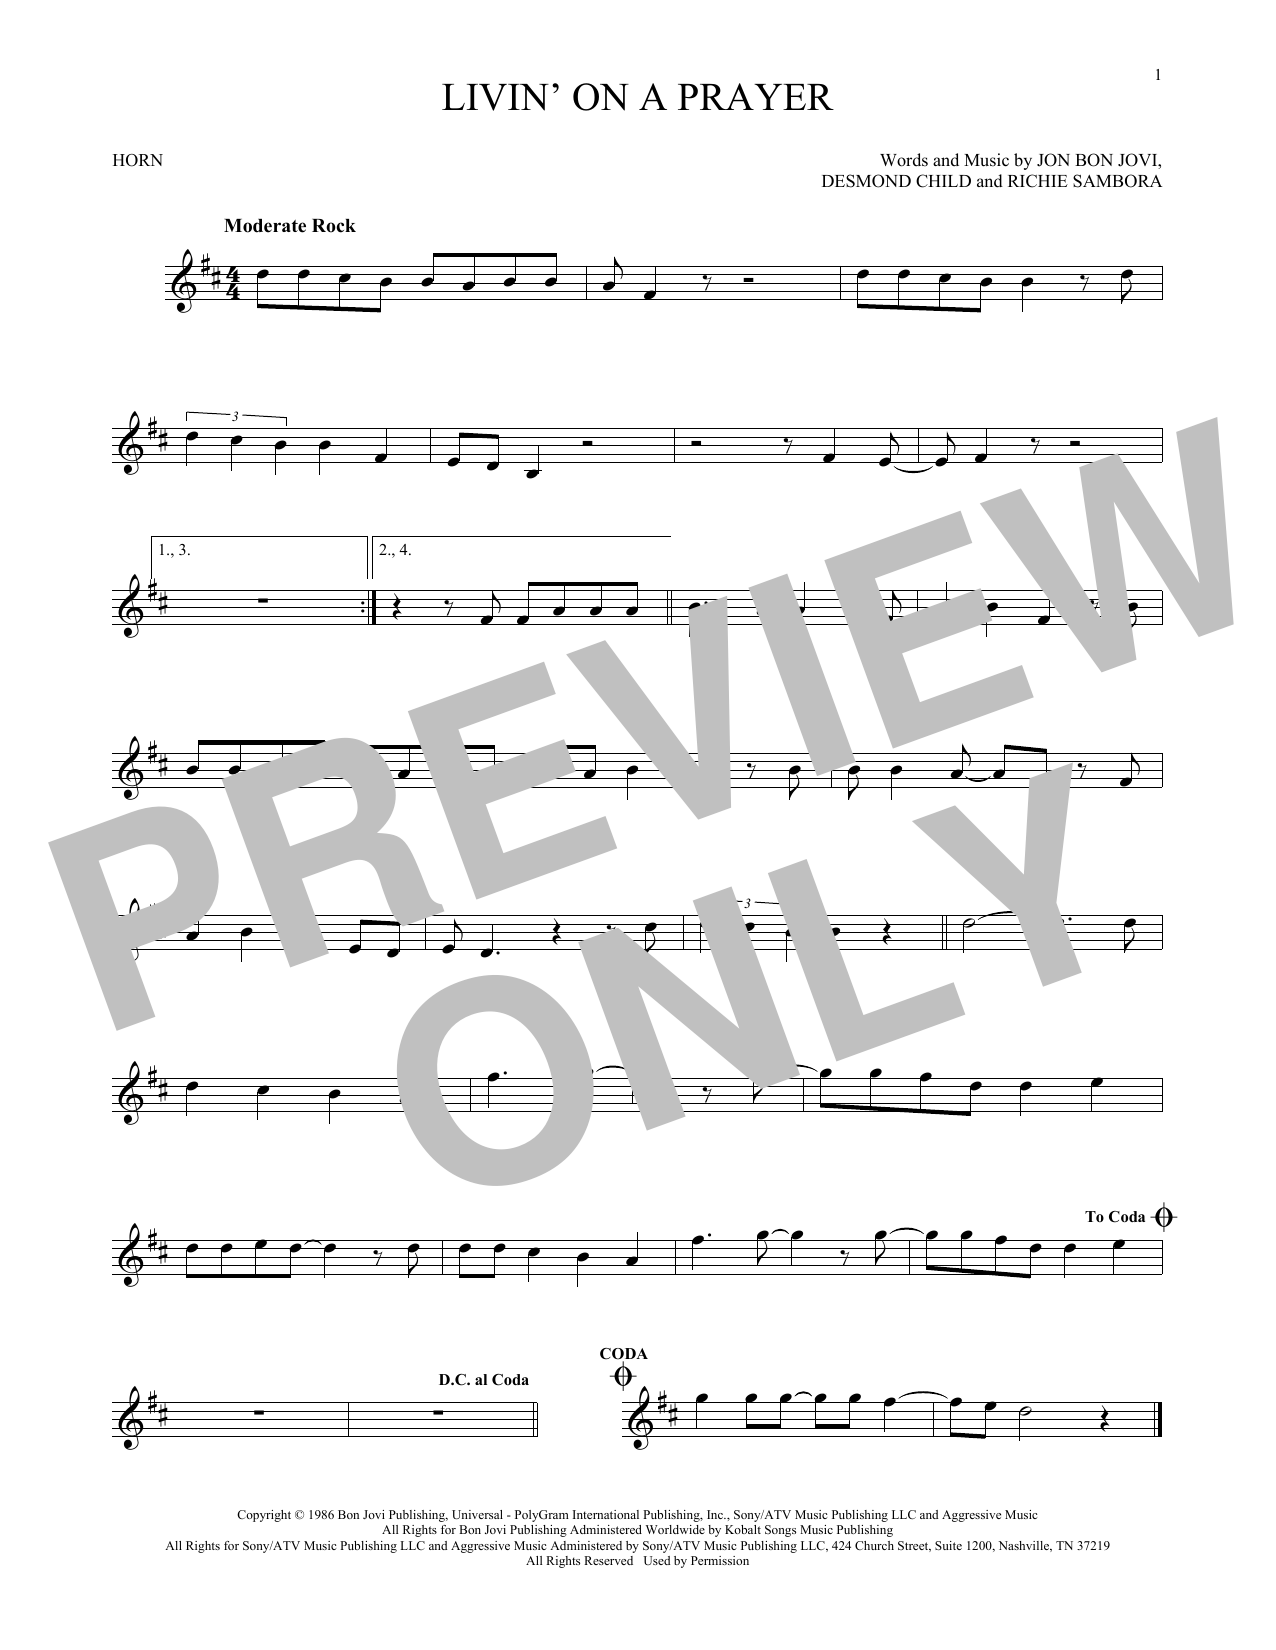 Livin' On A Prayer (French Horn Solo)